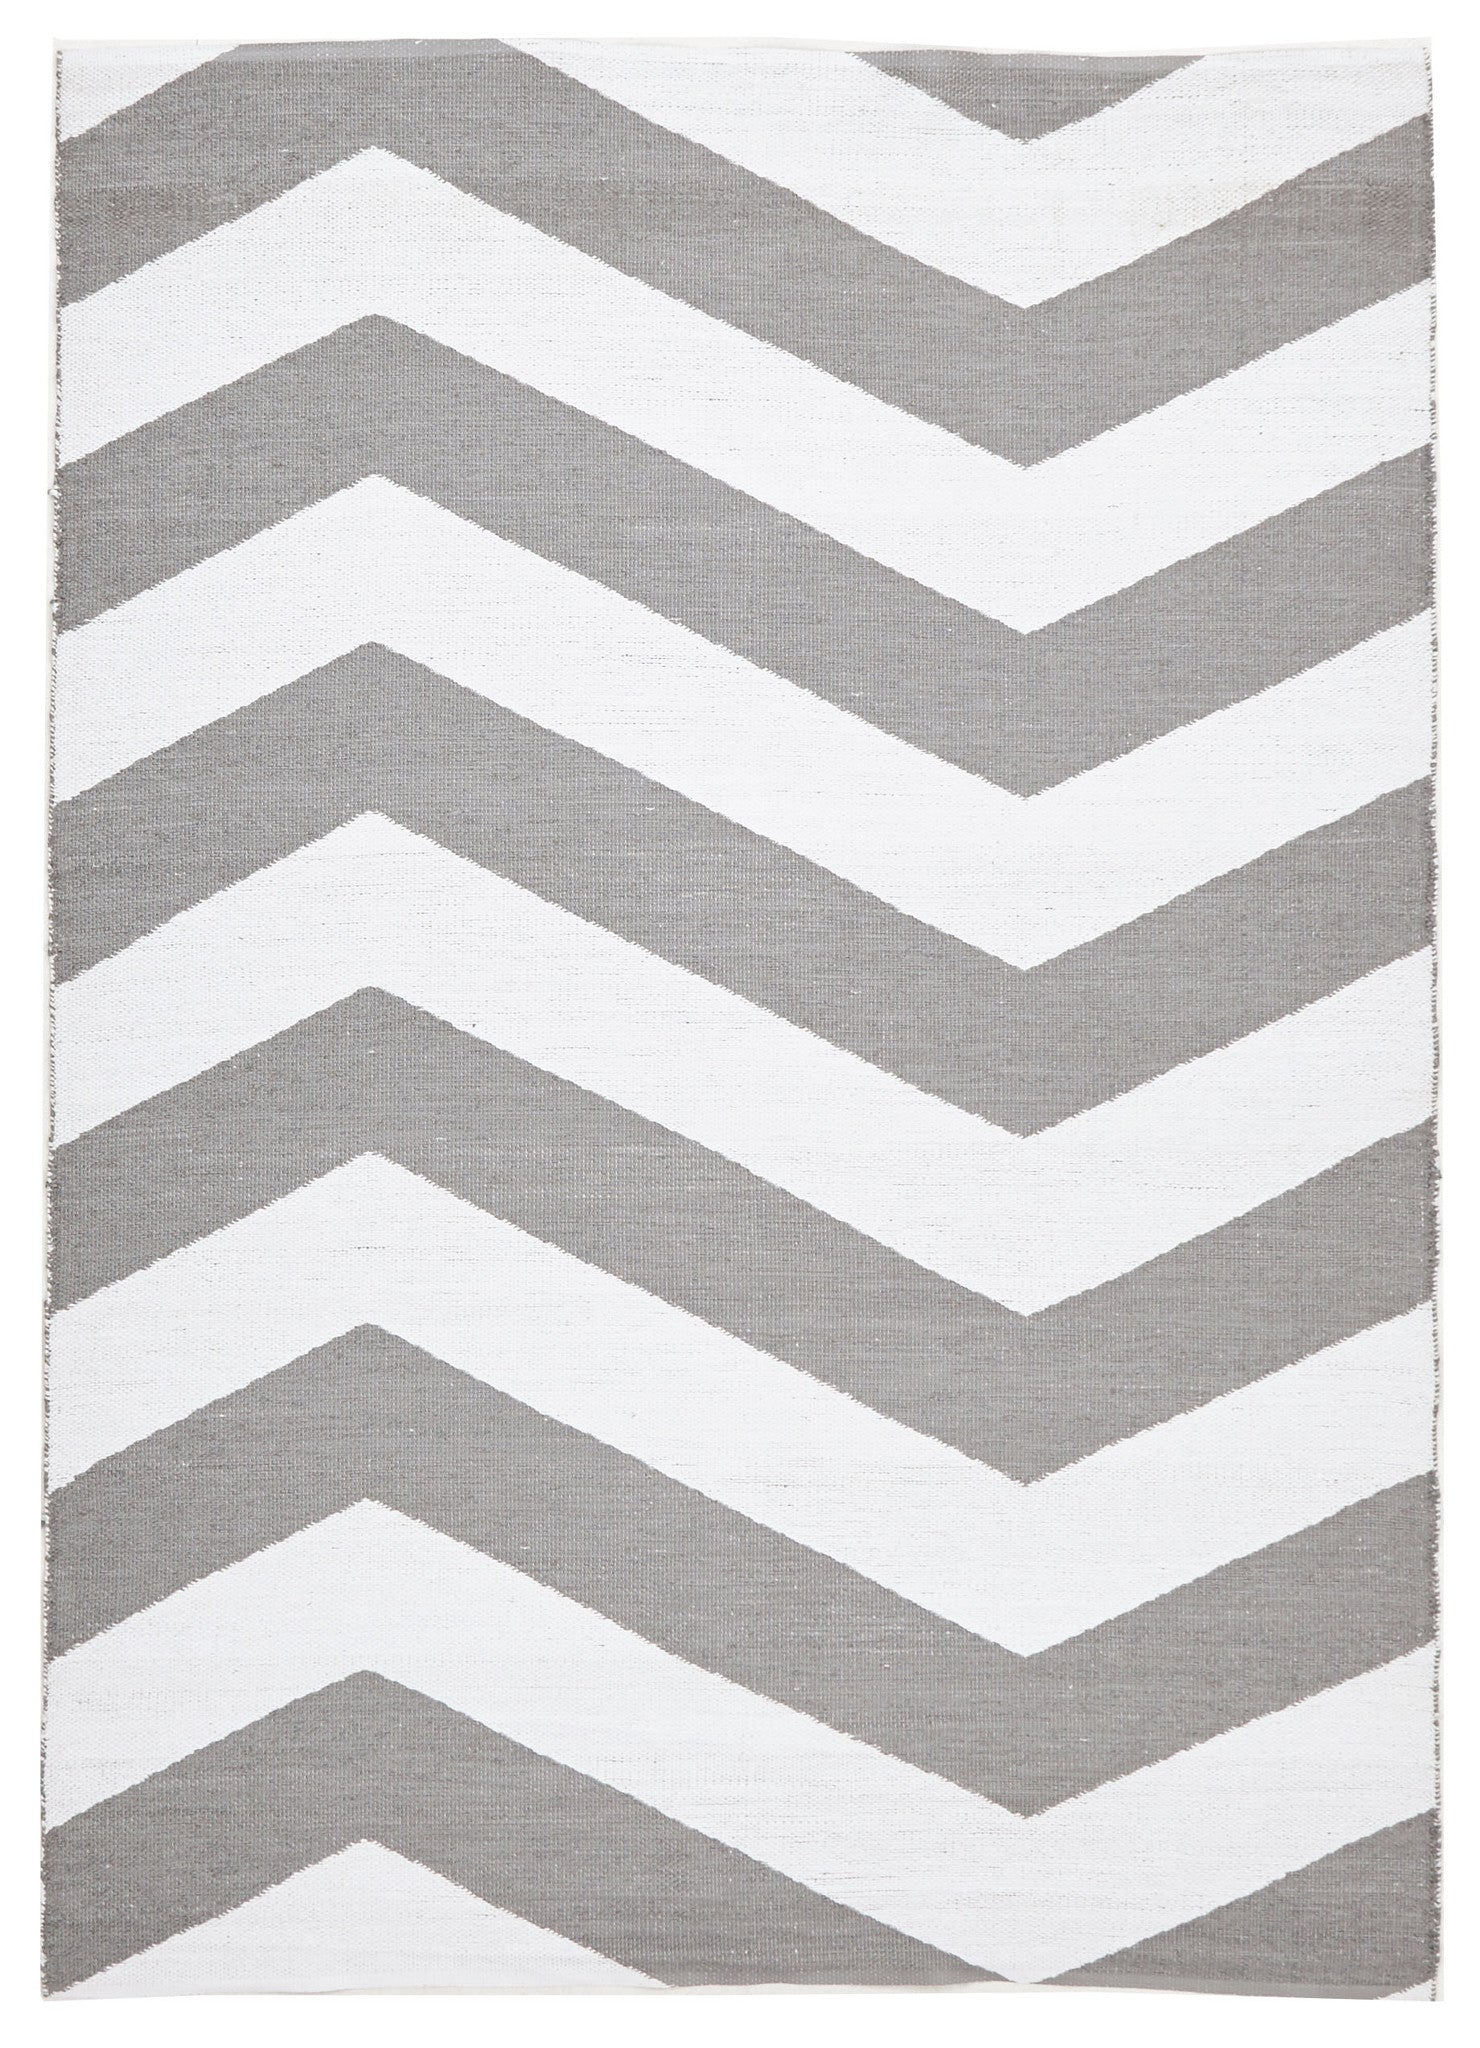 Coastal Indoor Out door Rug Chevron Grey White